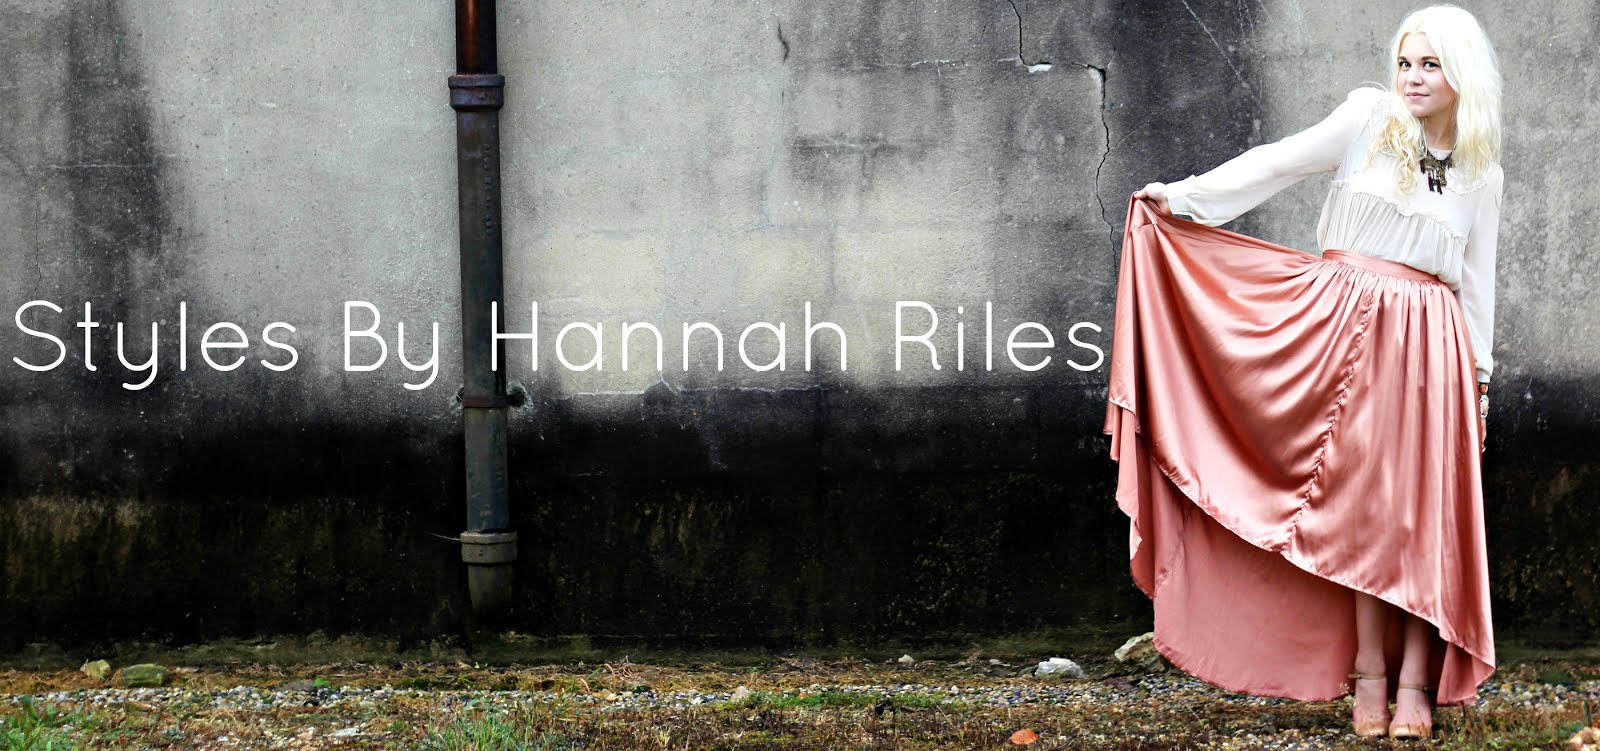 Styles By Hannah Riles